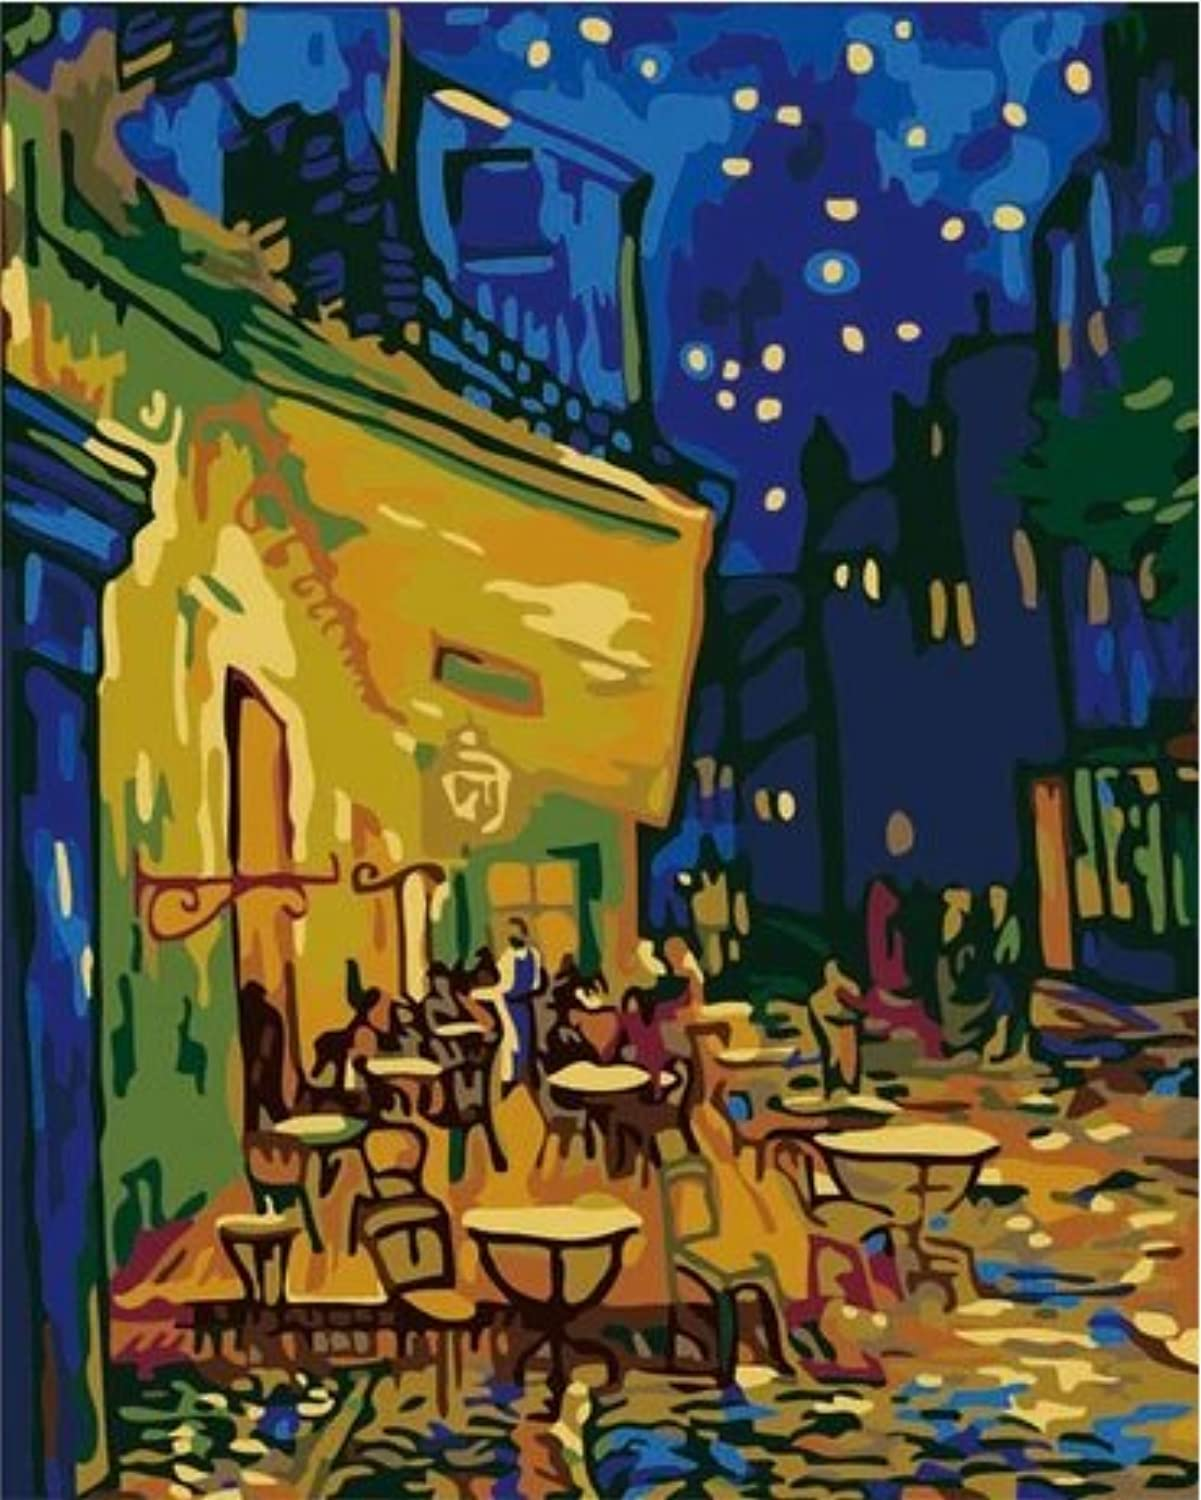 Diy oil painting, paint by number kit worldwide famous oil painting The Night Cafe in the Place Lamartine in Arles by Van Gogh 1620 inch. by Colour Talk